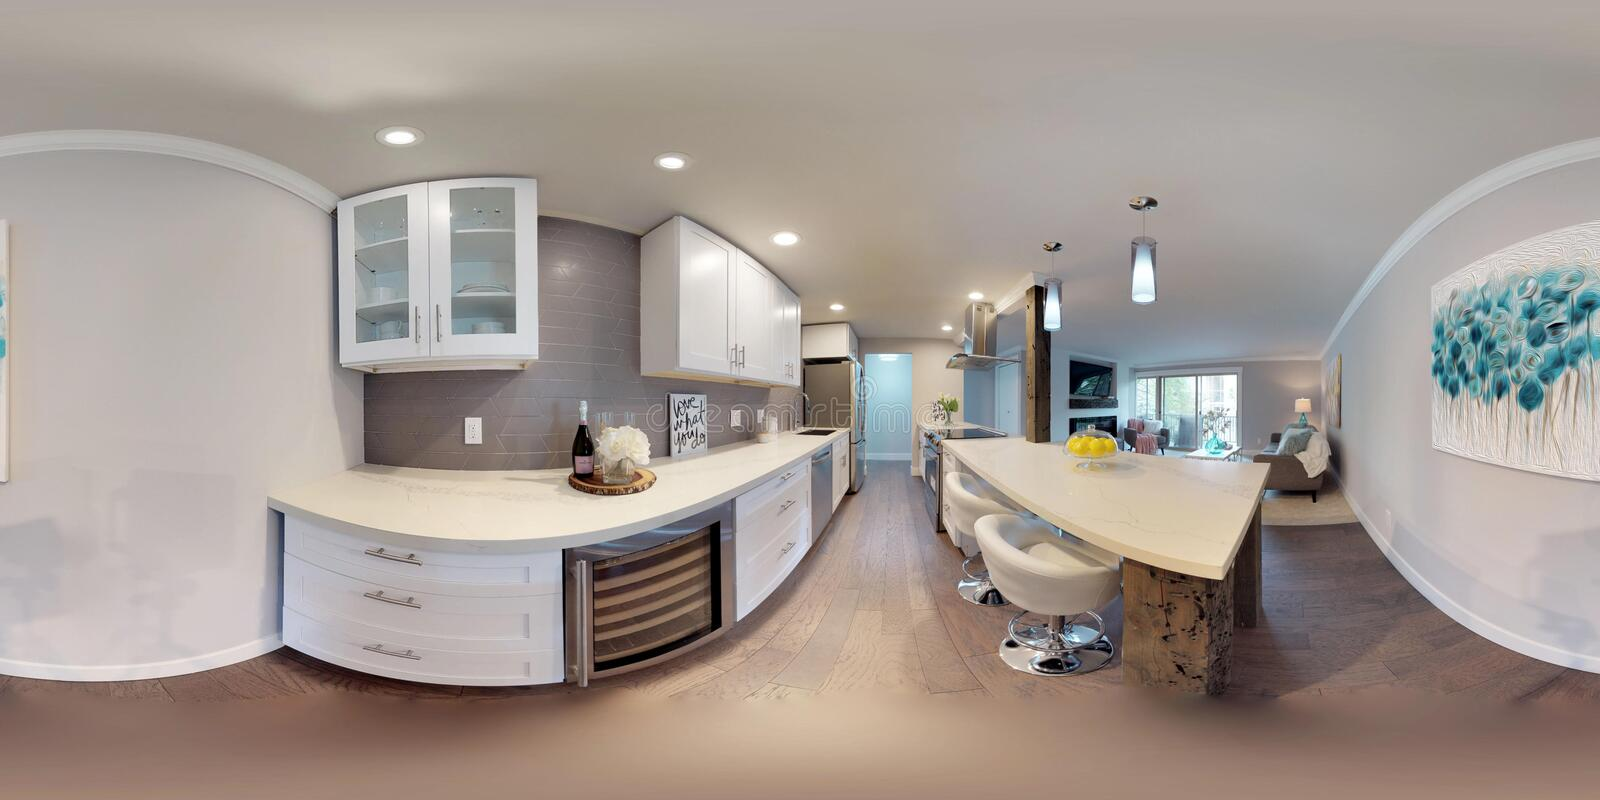 3d illustration spherical 360 degrees, a seamless panorama of kitchen stock images